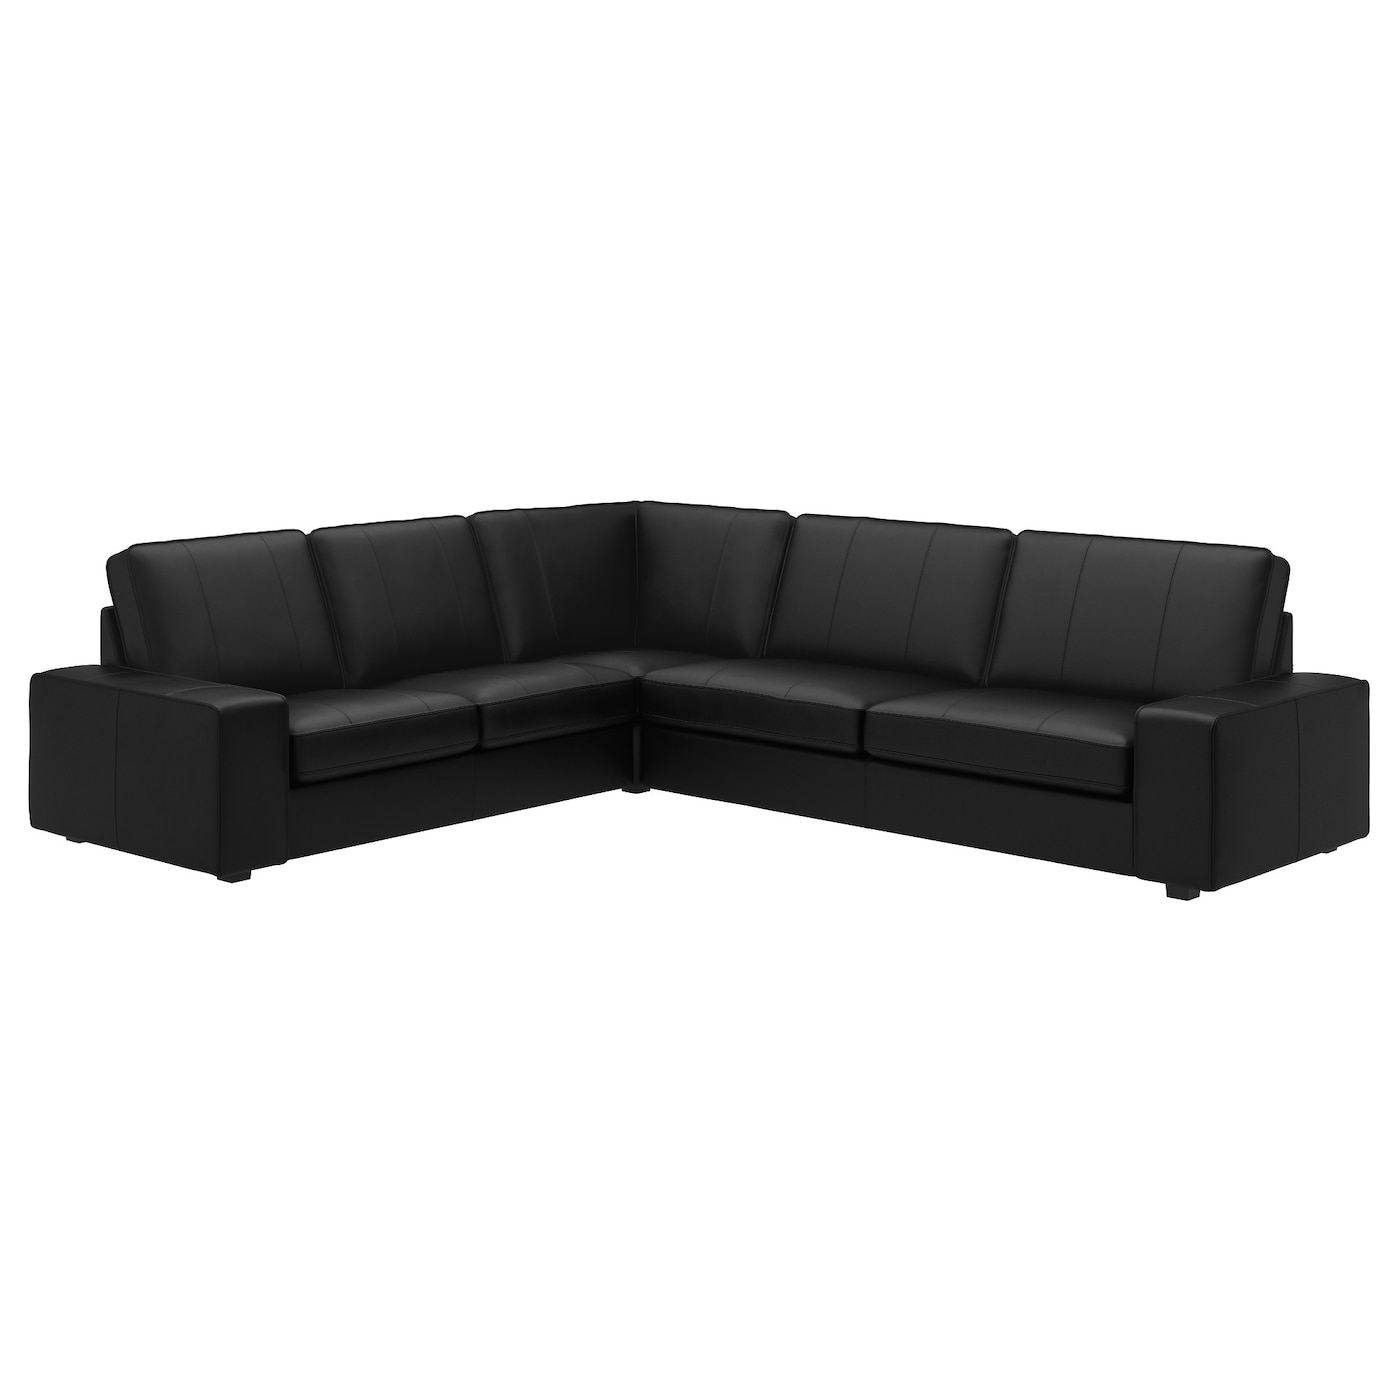 IKEA KIVIK corner sofa, 5-seat 10 year guarantee. Read about the terms in the guarantee brochure.